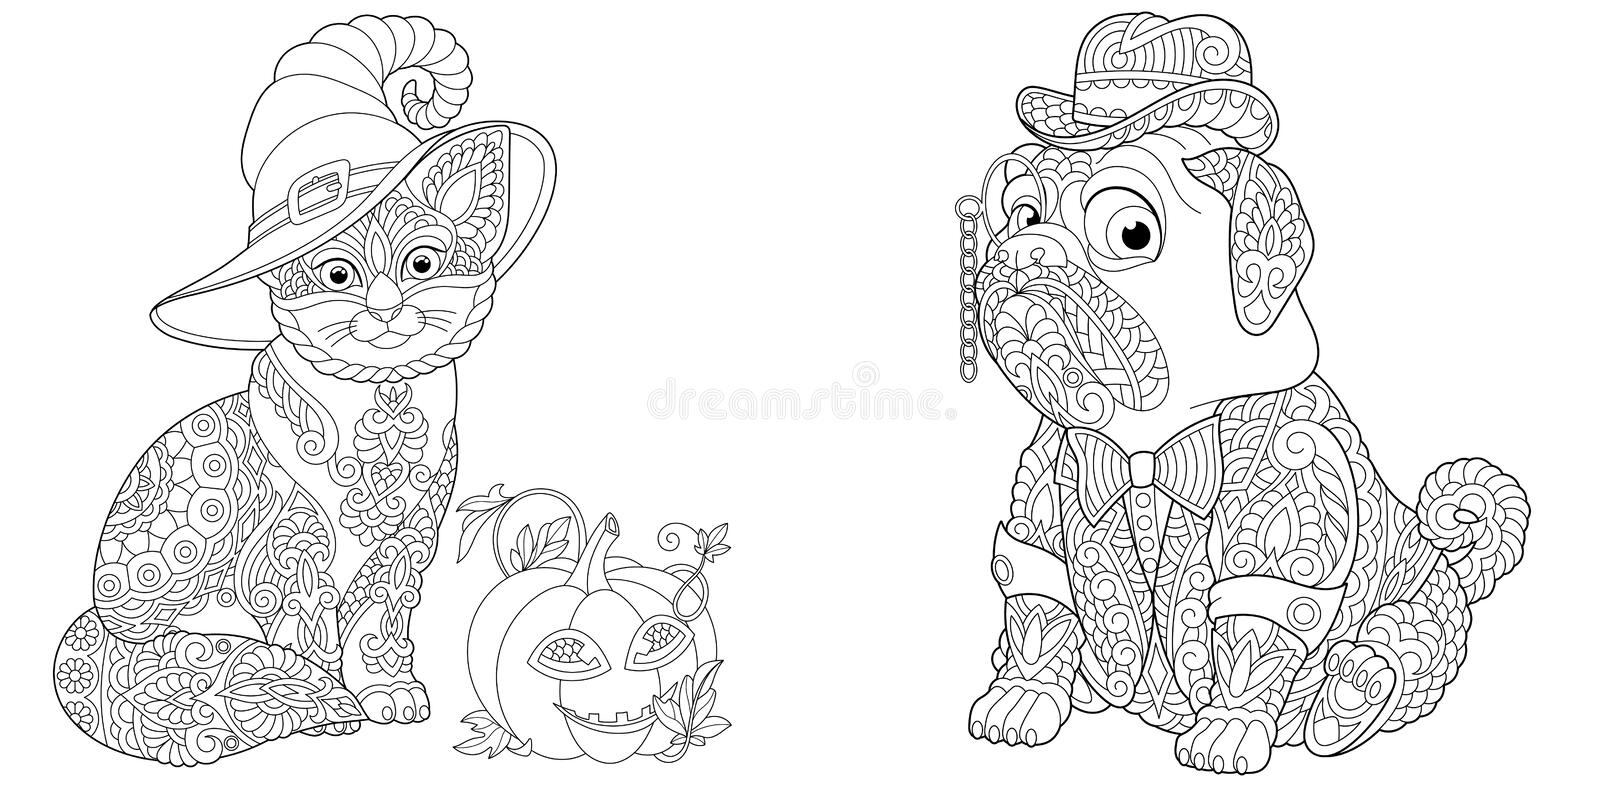 Cute Dog Colouring Stock Illustrations 347 Cute Dog Colouring Stock Illustrations Vectors Clipart Dreamstime